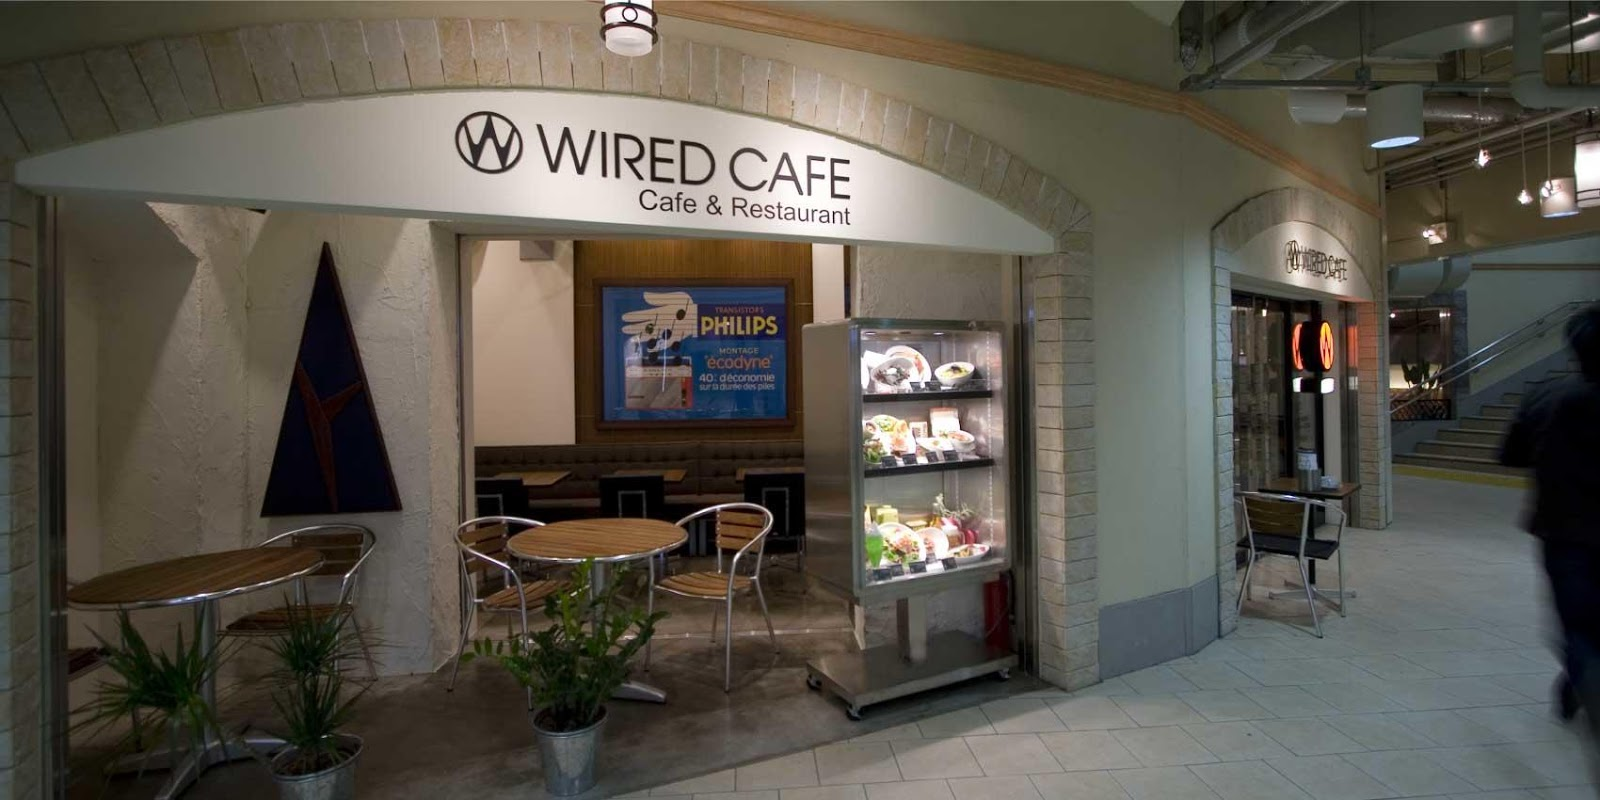 WIRED CAFE アトレ上野店の写真